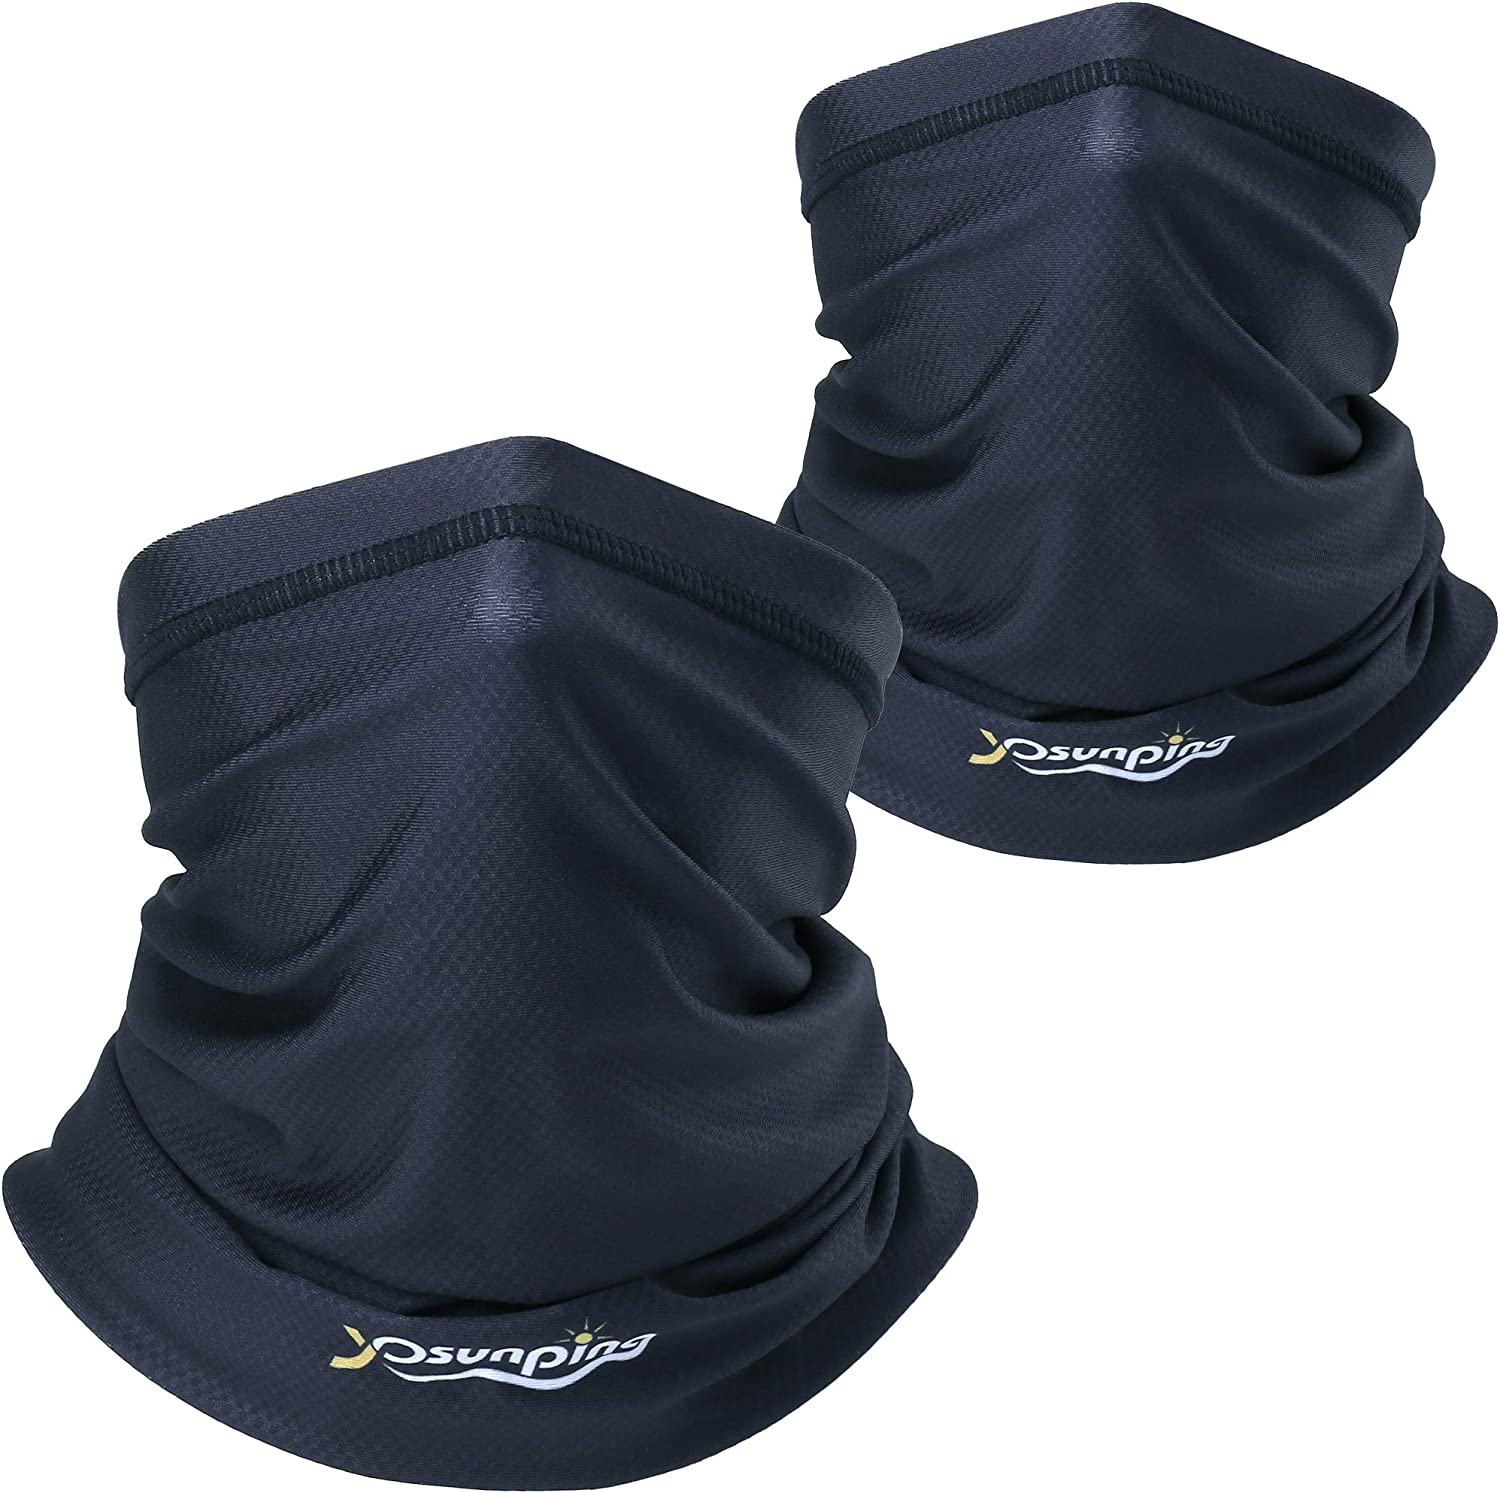 YOSUNPING UPF 50+ Bandana Face Mask Mouth Cover for Dust, Wind, Outdoors, Sports